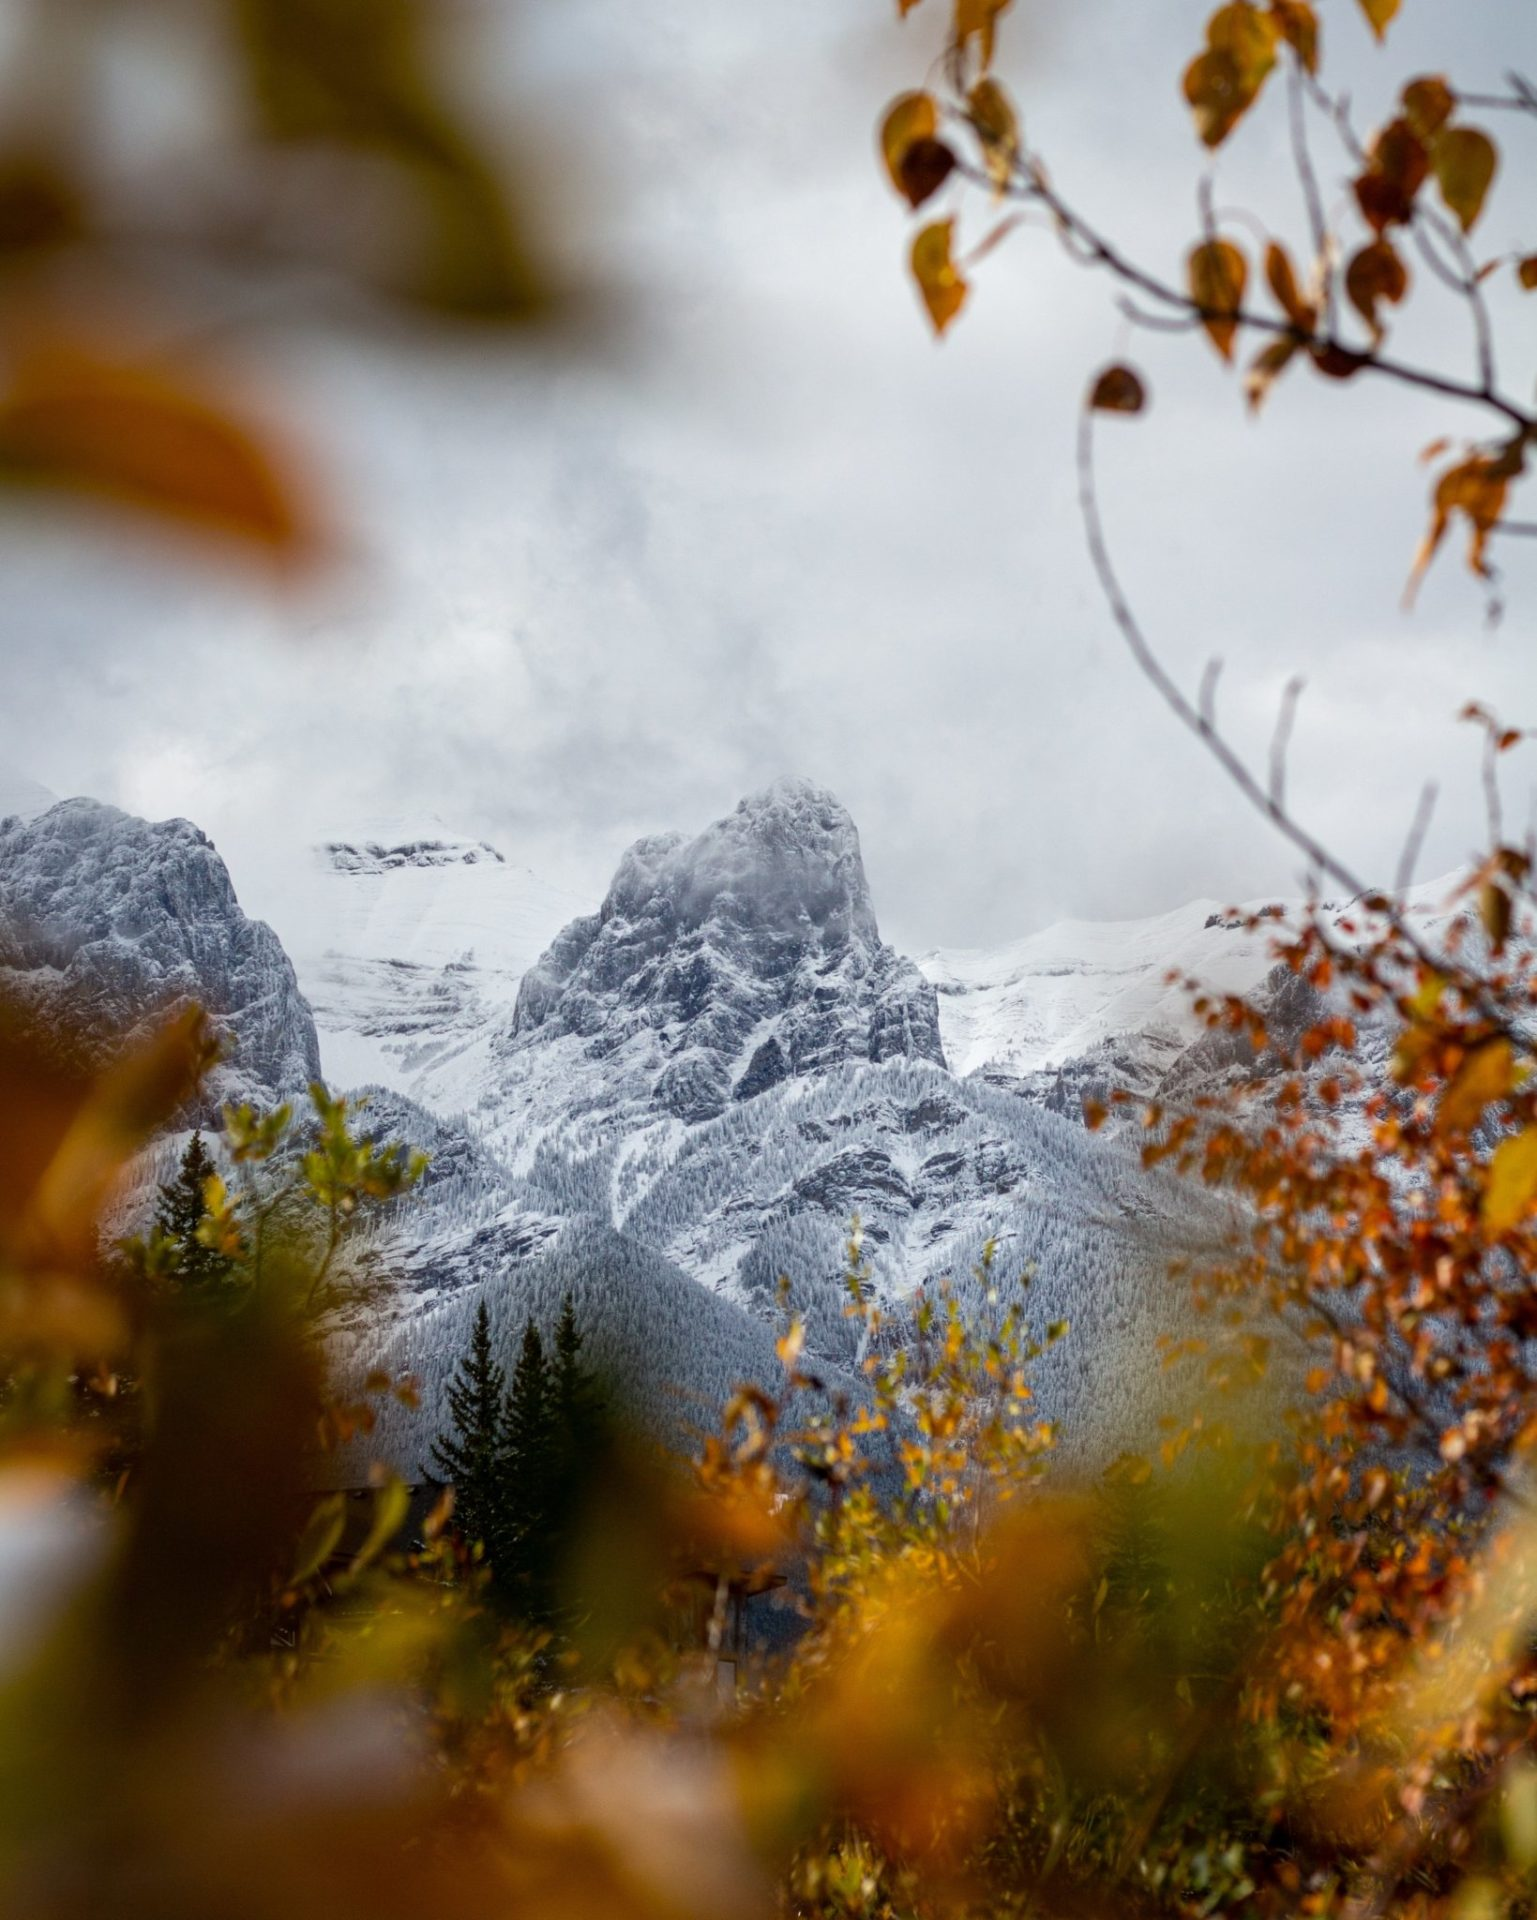 beautiful snowy mountains seen through the leaves